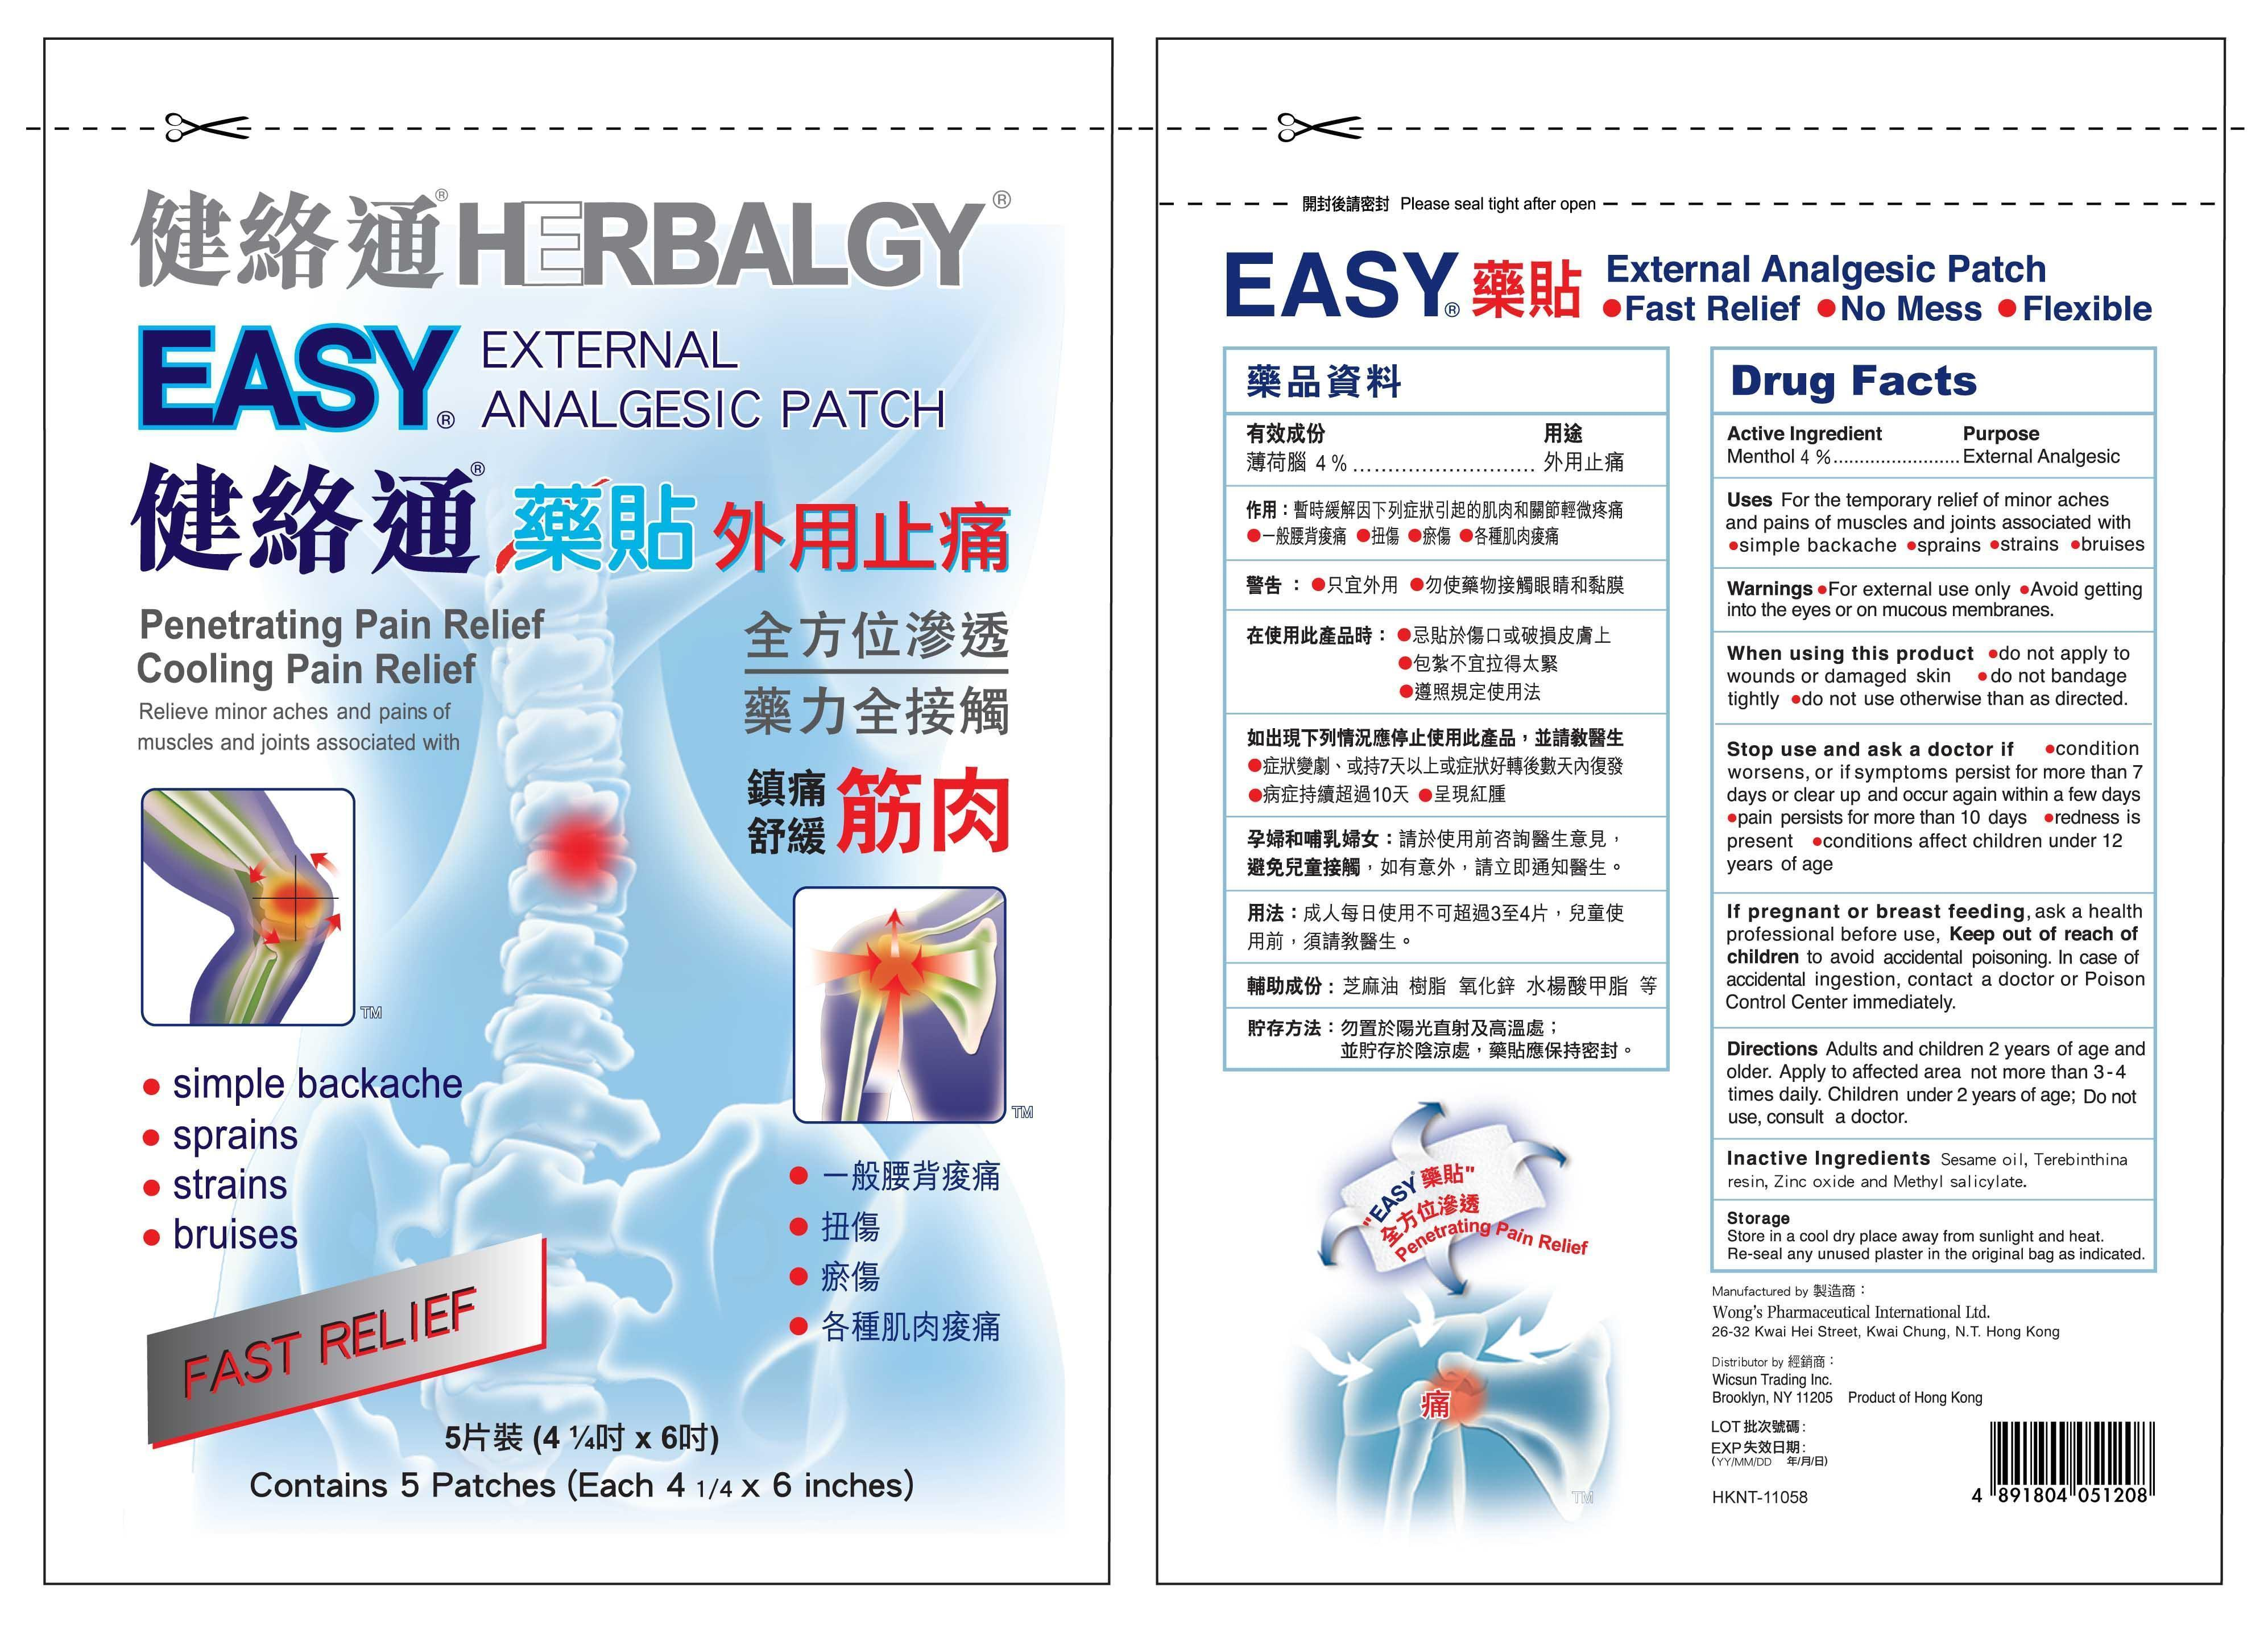 Easy (Menthol) Patch [Wong's Pharmaceutical International]